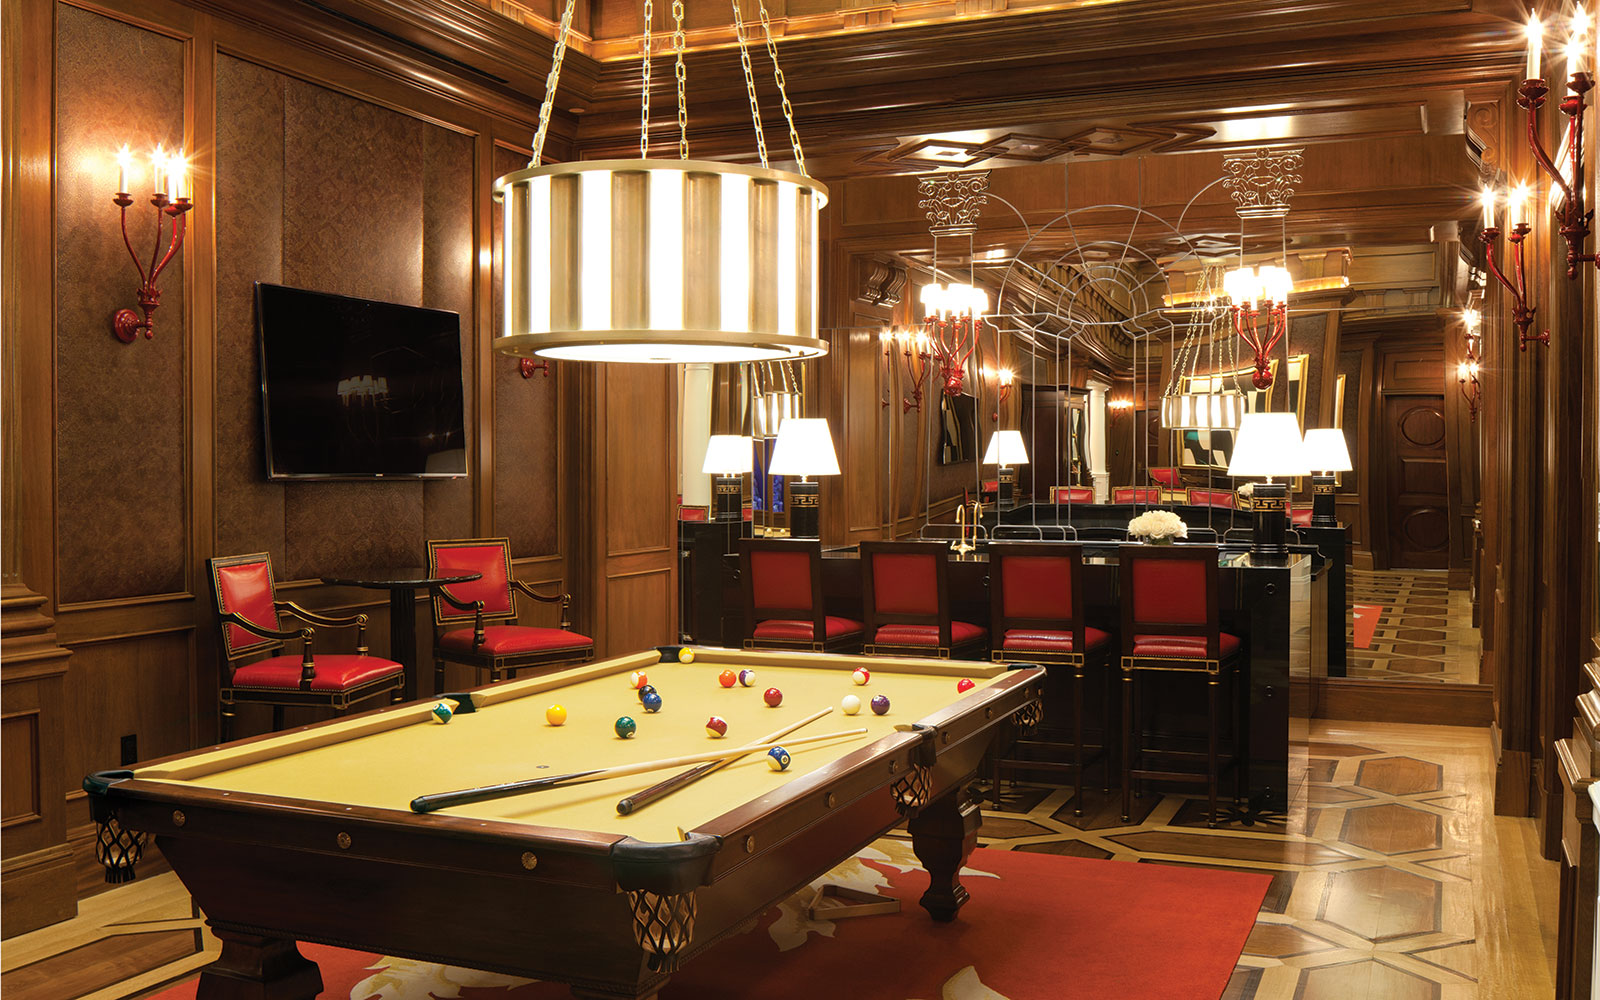 Caesars-Titus-Villa-Billiard-Room.jpg